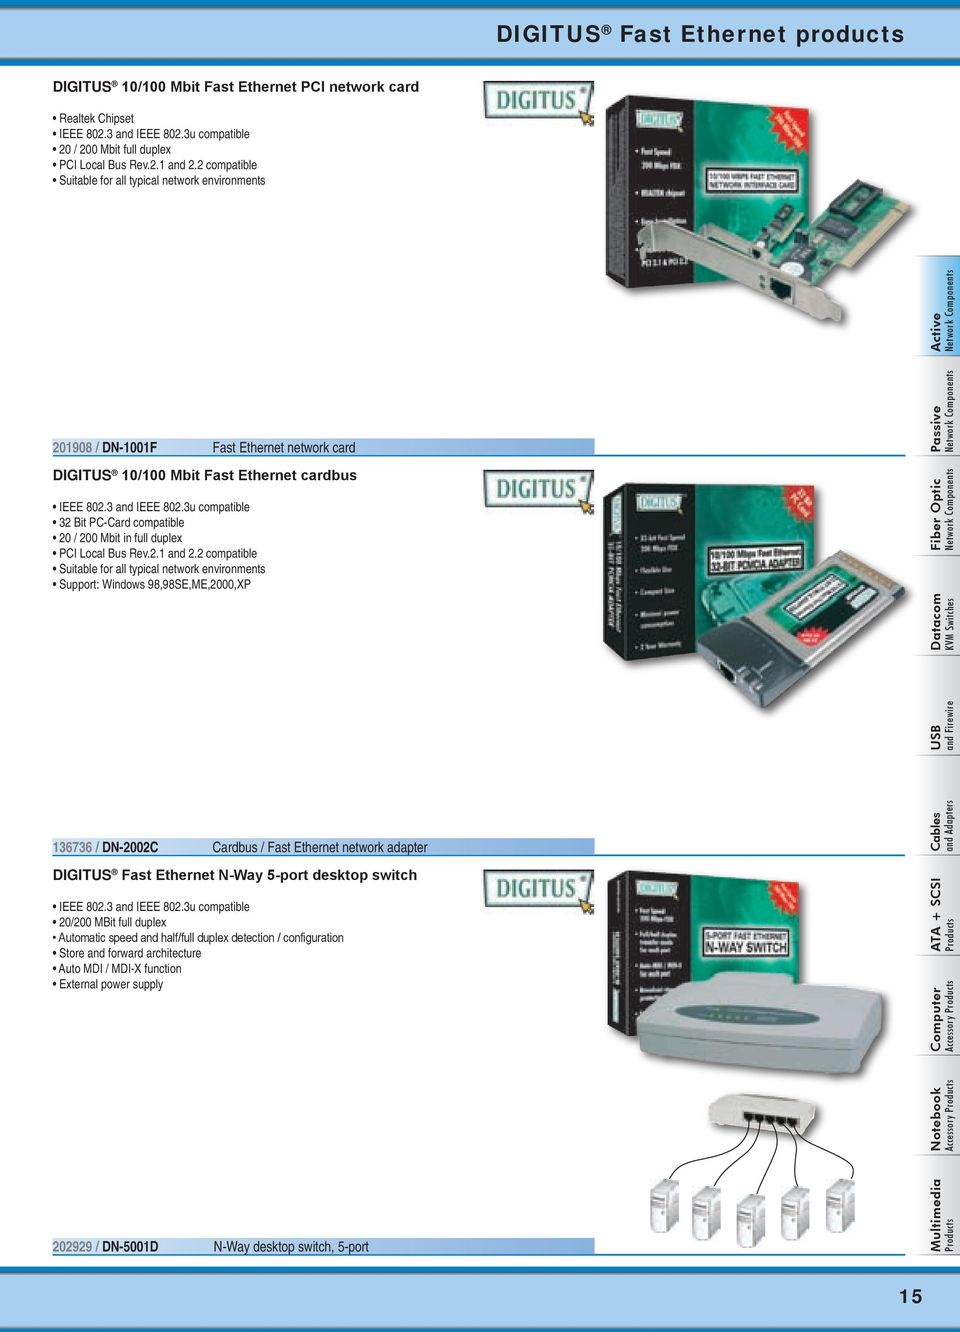 3u compatible 32 Bit PC-Card compatible 20 / 200 Mbit in full duplex PCI Local Bus Rev.2.1 and 2.